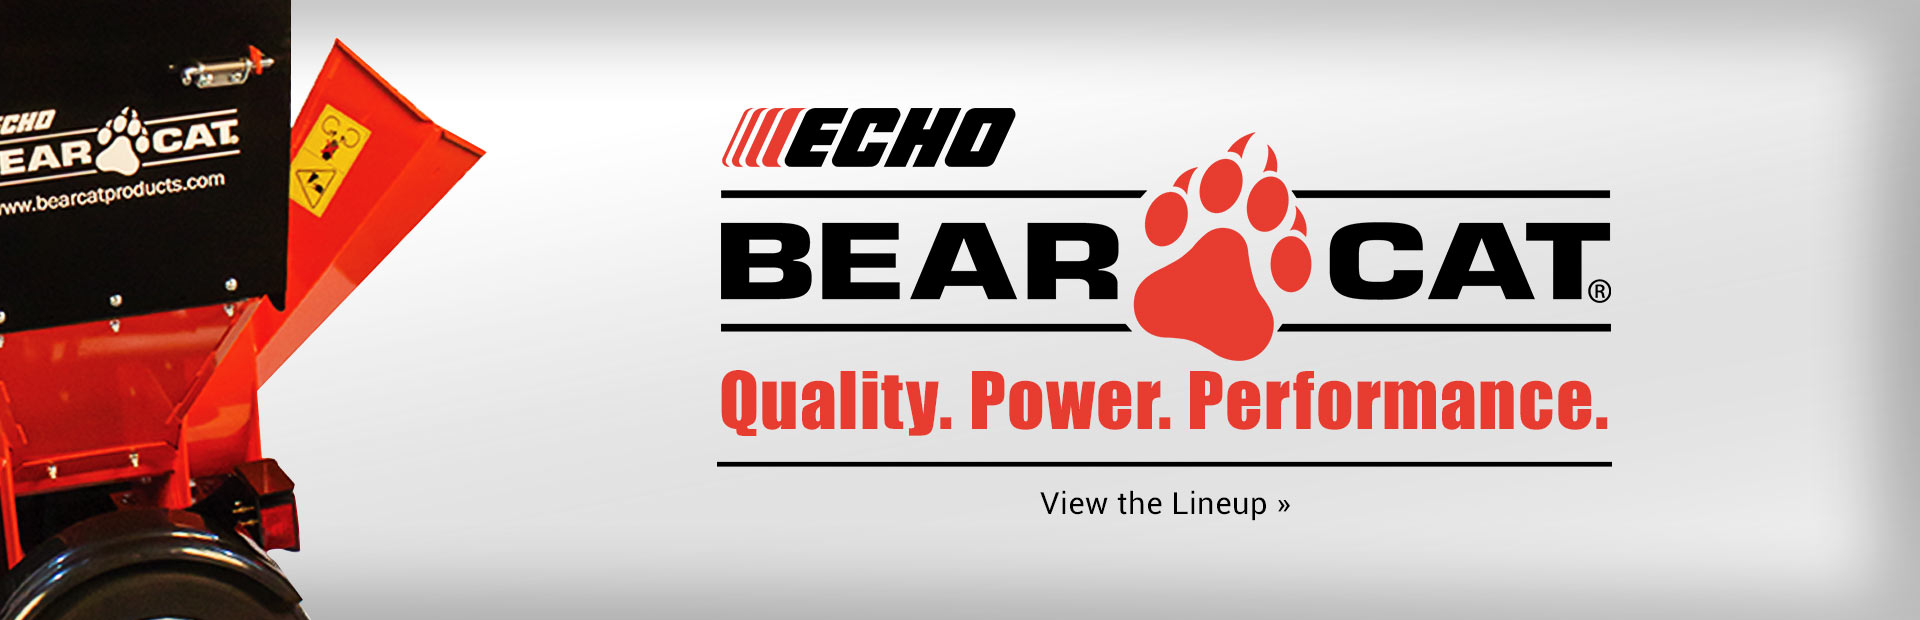 ECHO Bear Cat: Click here to view the lineup.